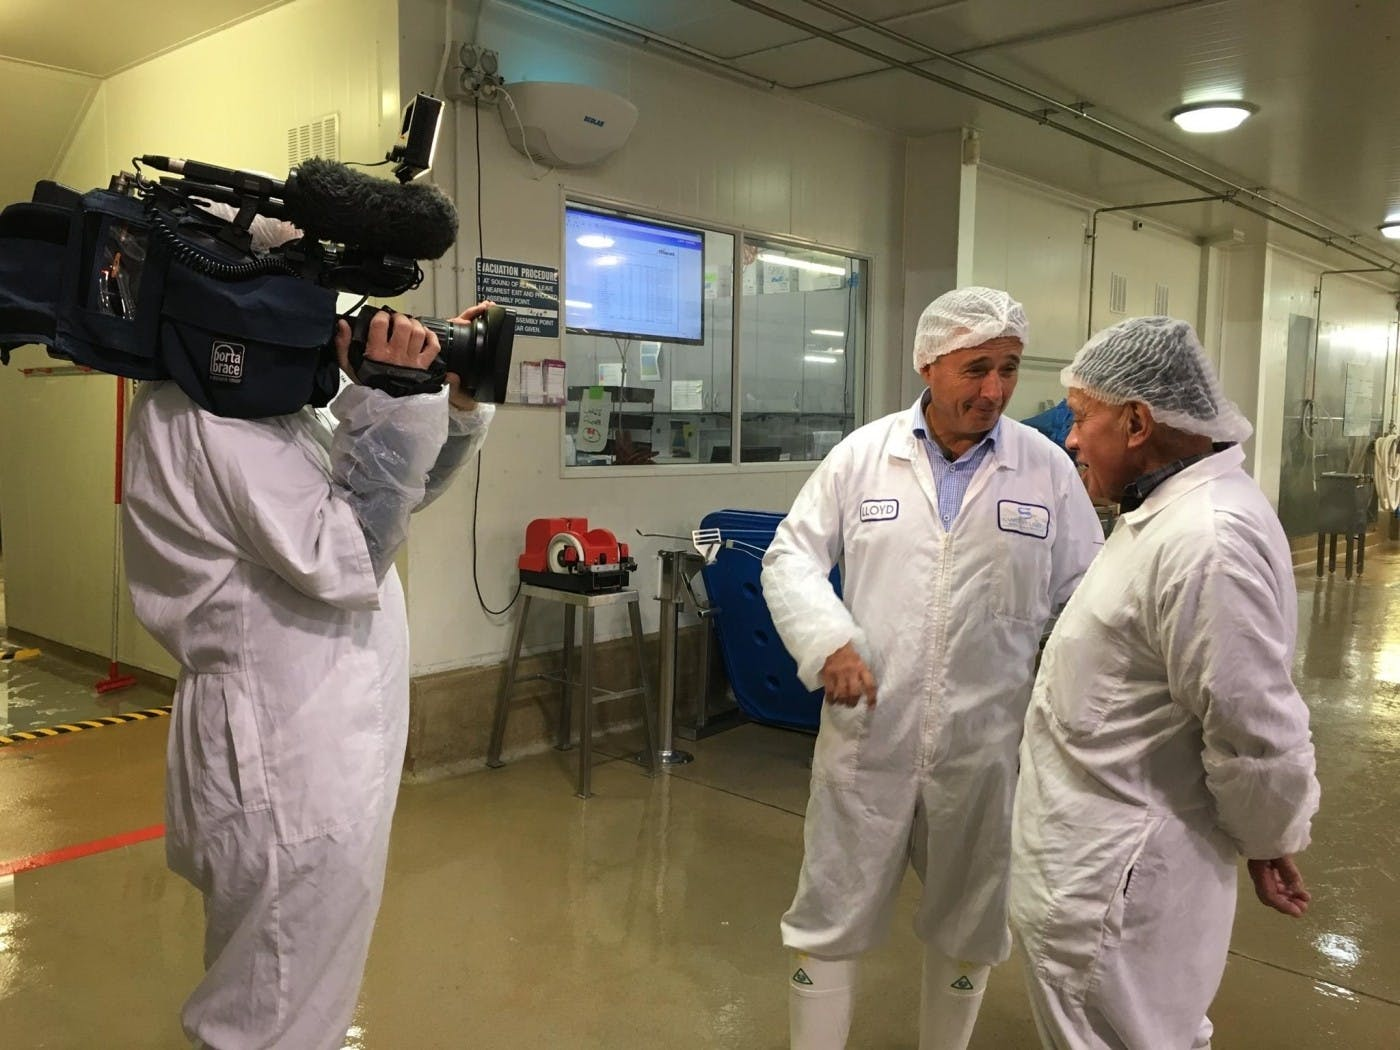 New Zealand's Largest Seafood Company Sanford Keeps Employees on Vessels All over the World Informed of Company News Using Digital Signage